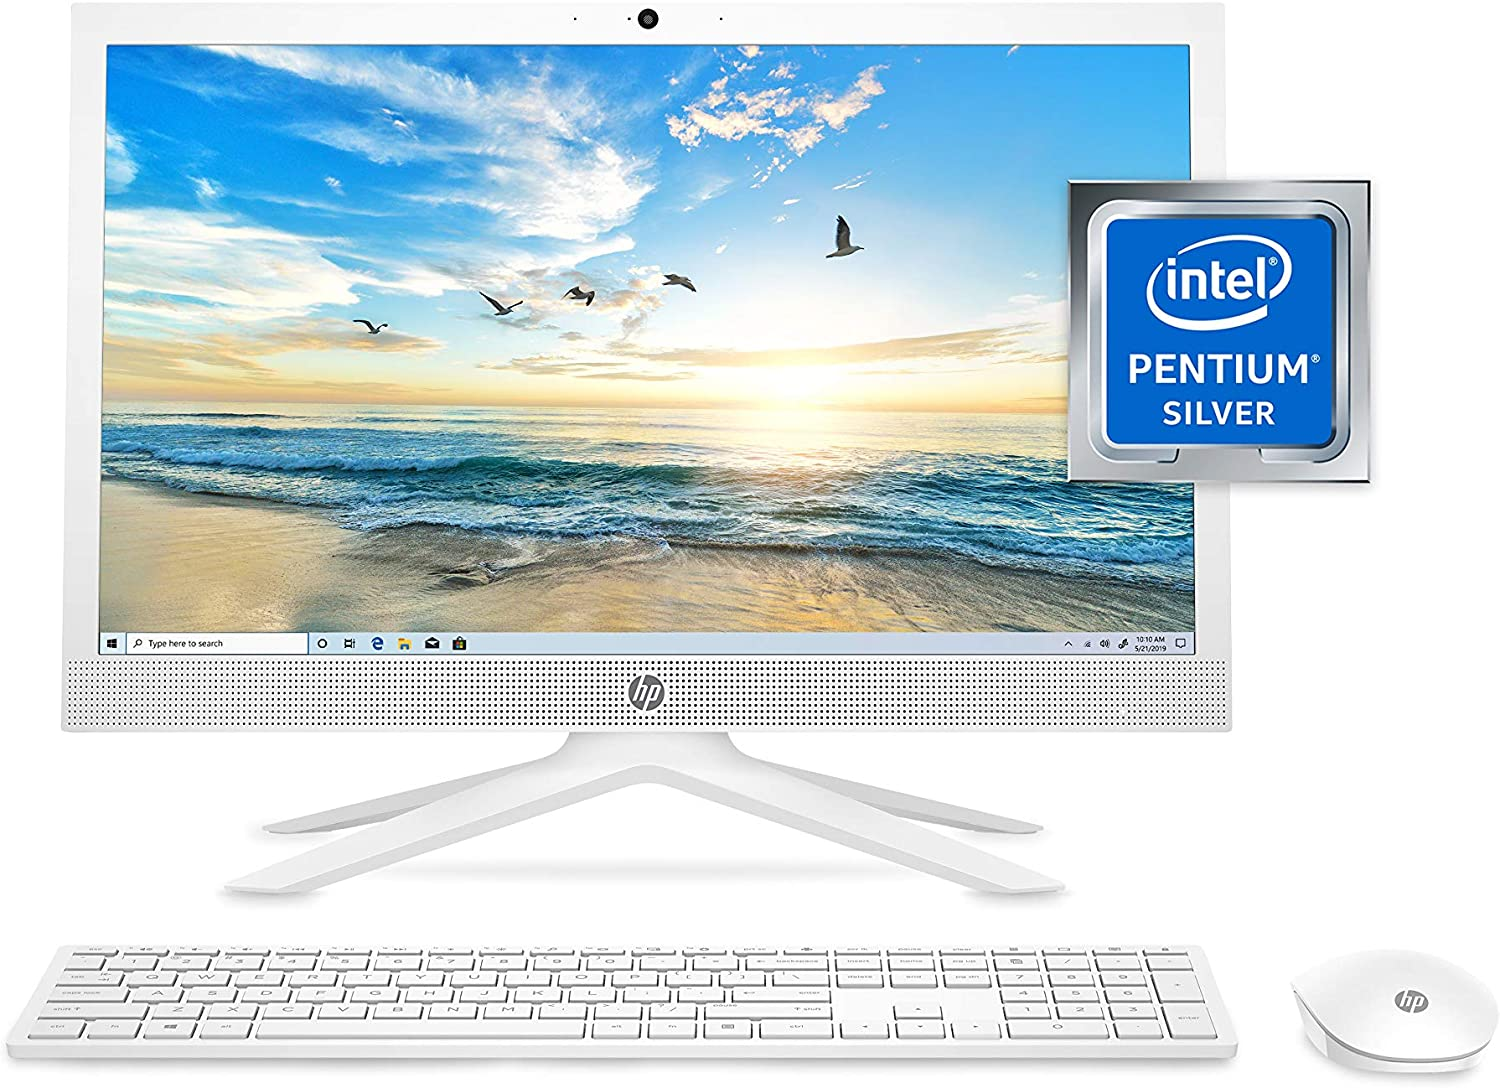 HP 21 All-in-One PC Intel J5040 Proces Quad-Core Silver Large discharge sale Pentium Rapid rise